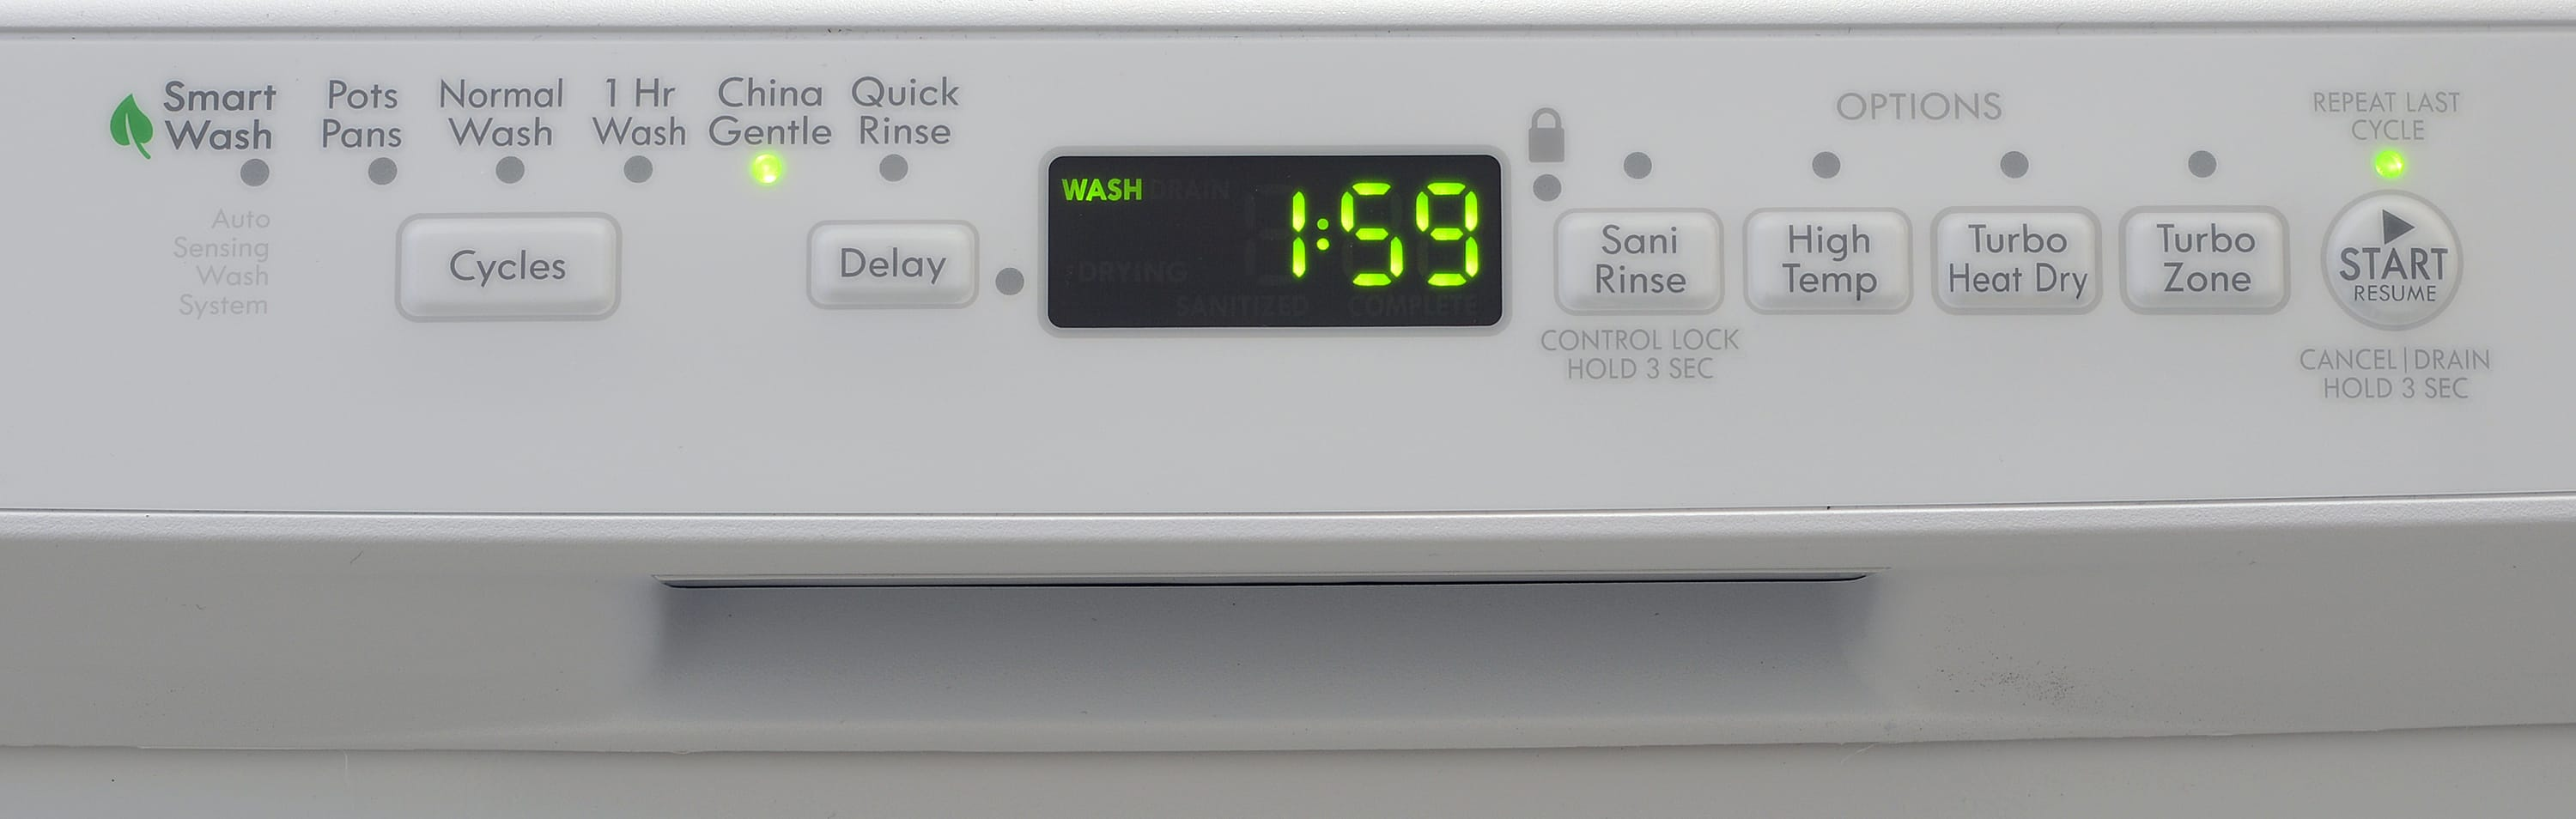 Kenmore 13202 front-facing control panel